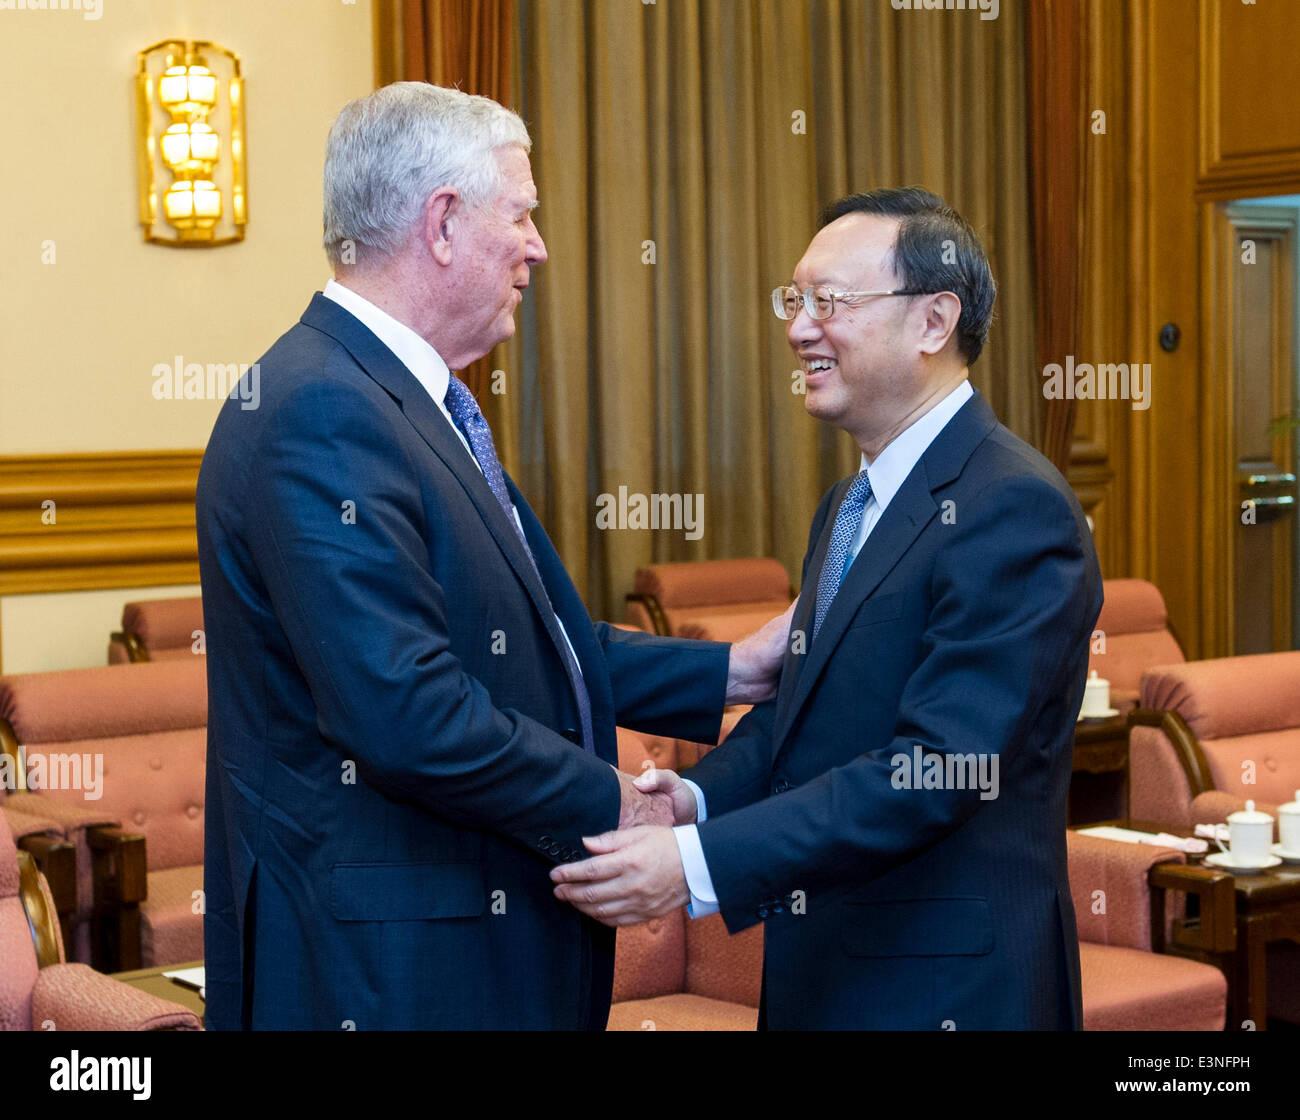 Beijing, China. 24th June, 2014. Chinese State Councilor Yang Jiechi (R) meets with a delegation from the American - Stock Image